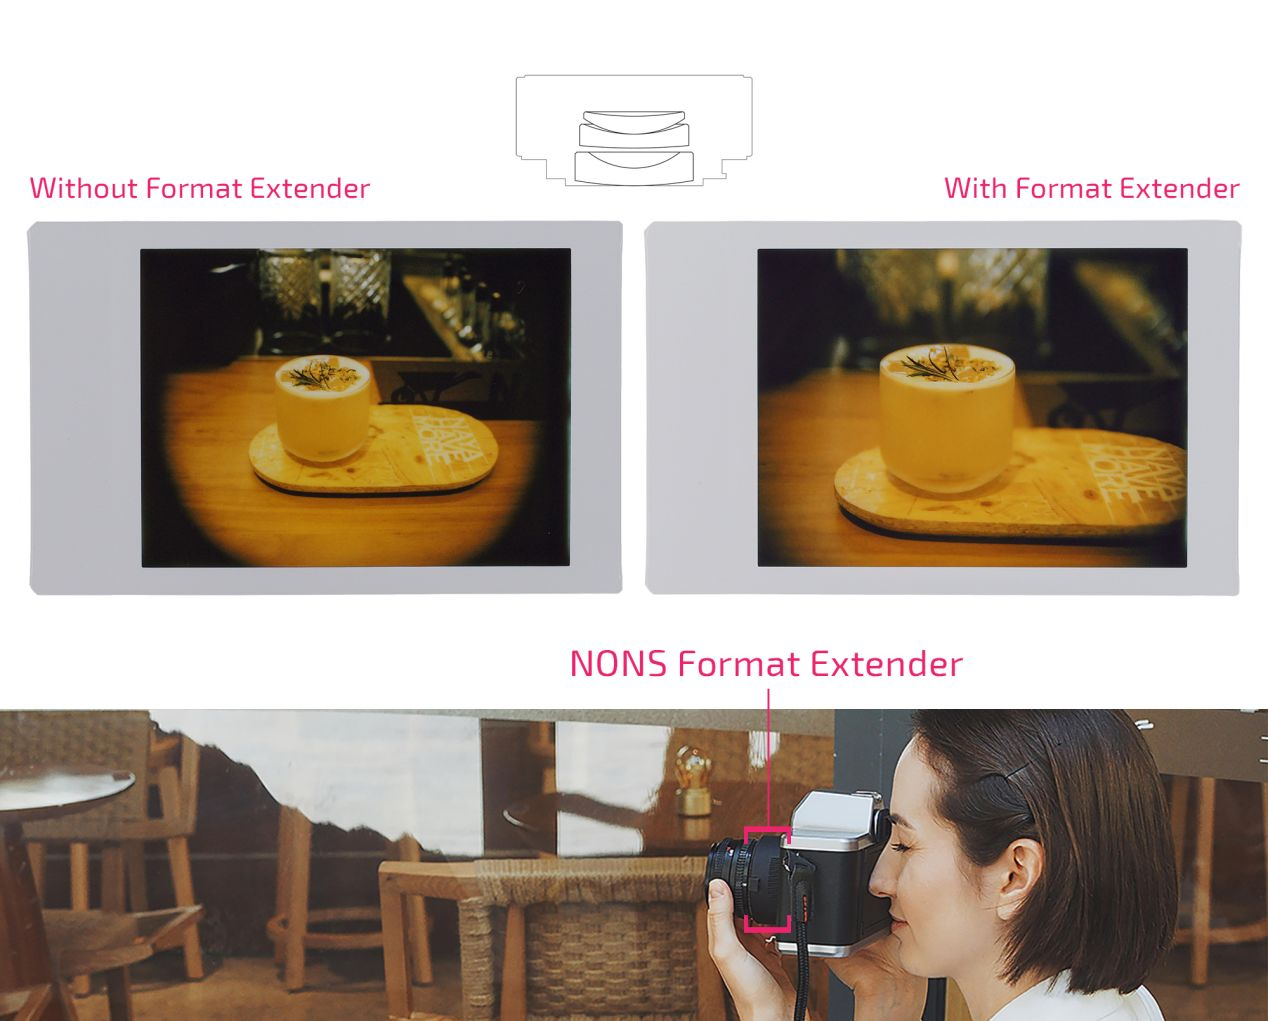 Images from NONS press kit with my edits.